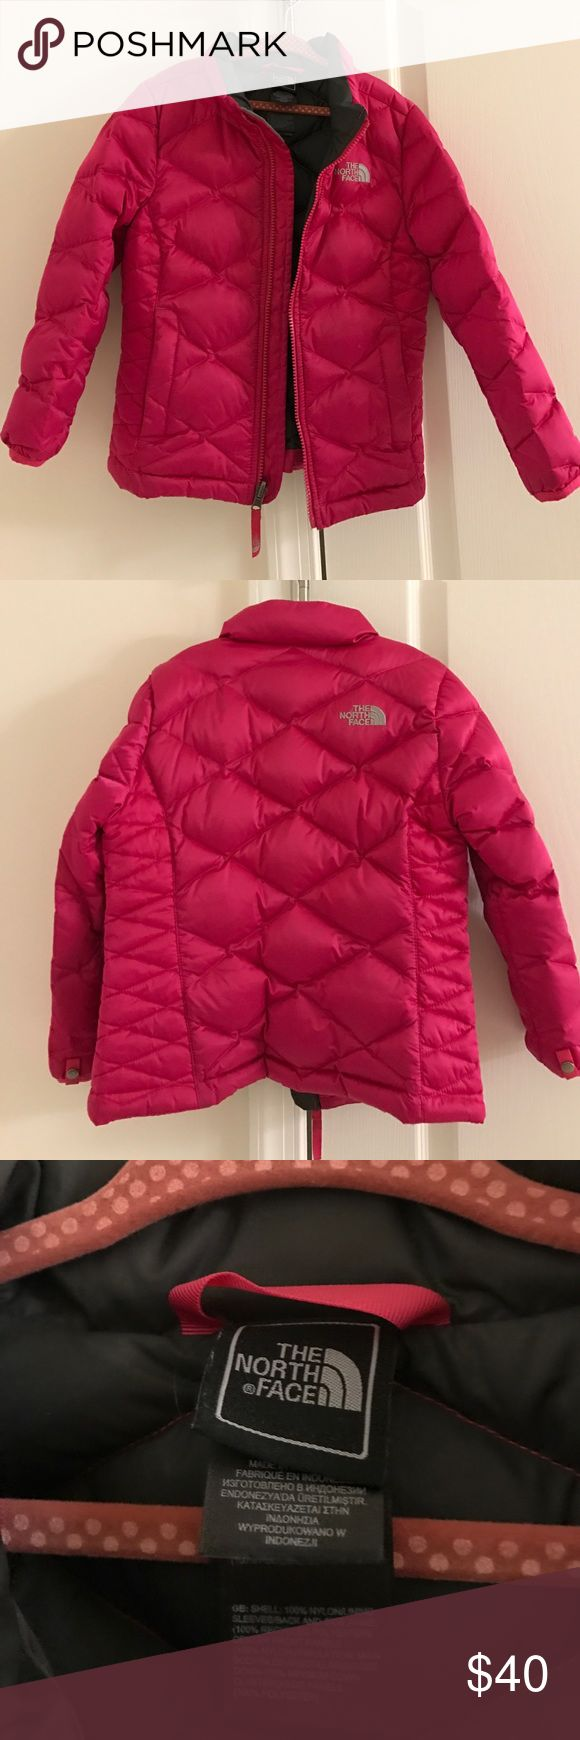 Girls' North Face jacket. Size XS(6) The North Face Jackets & Coats Puffers